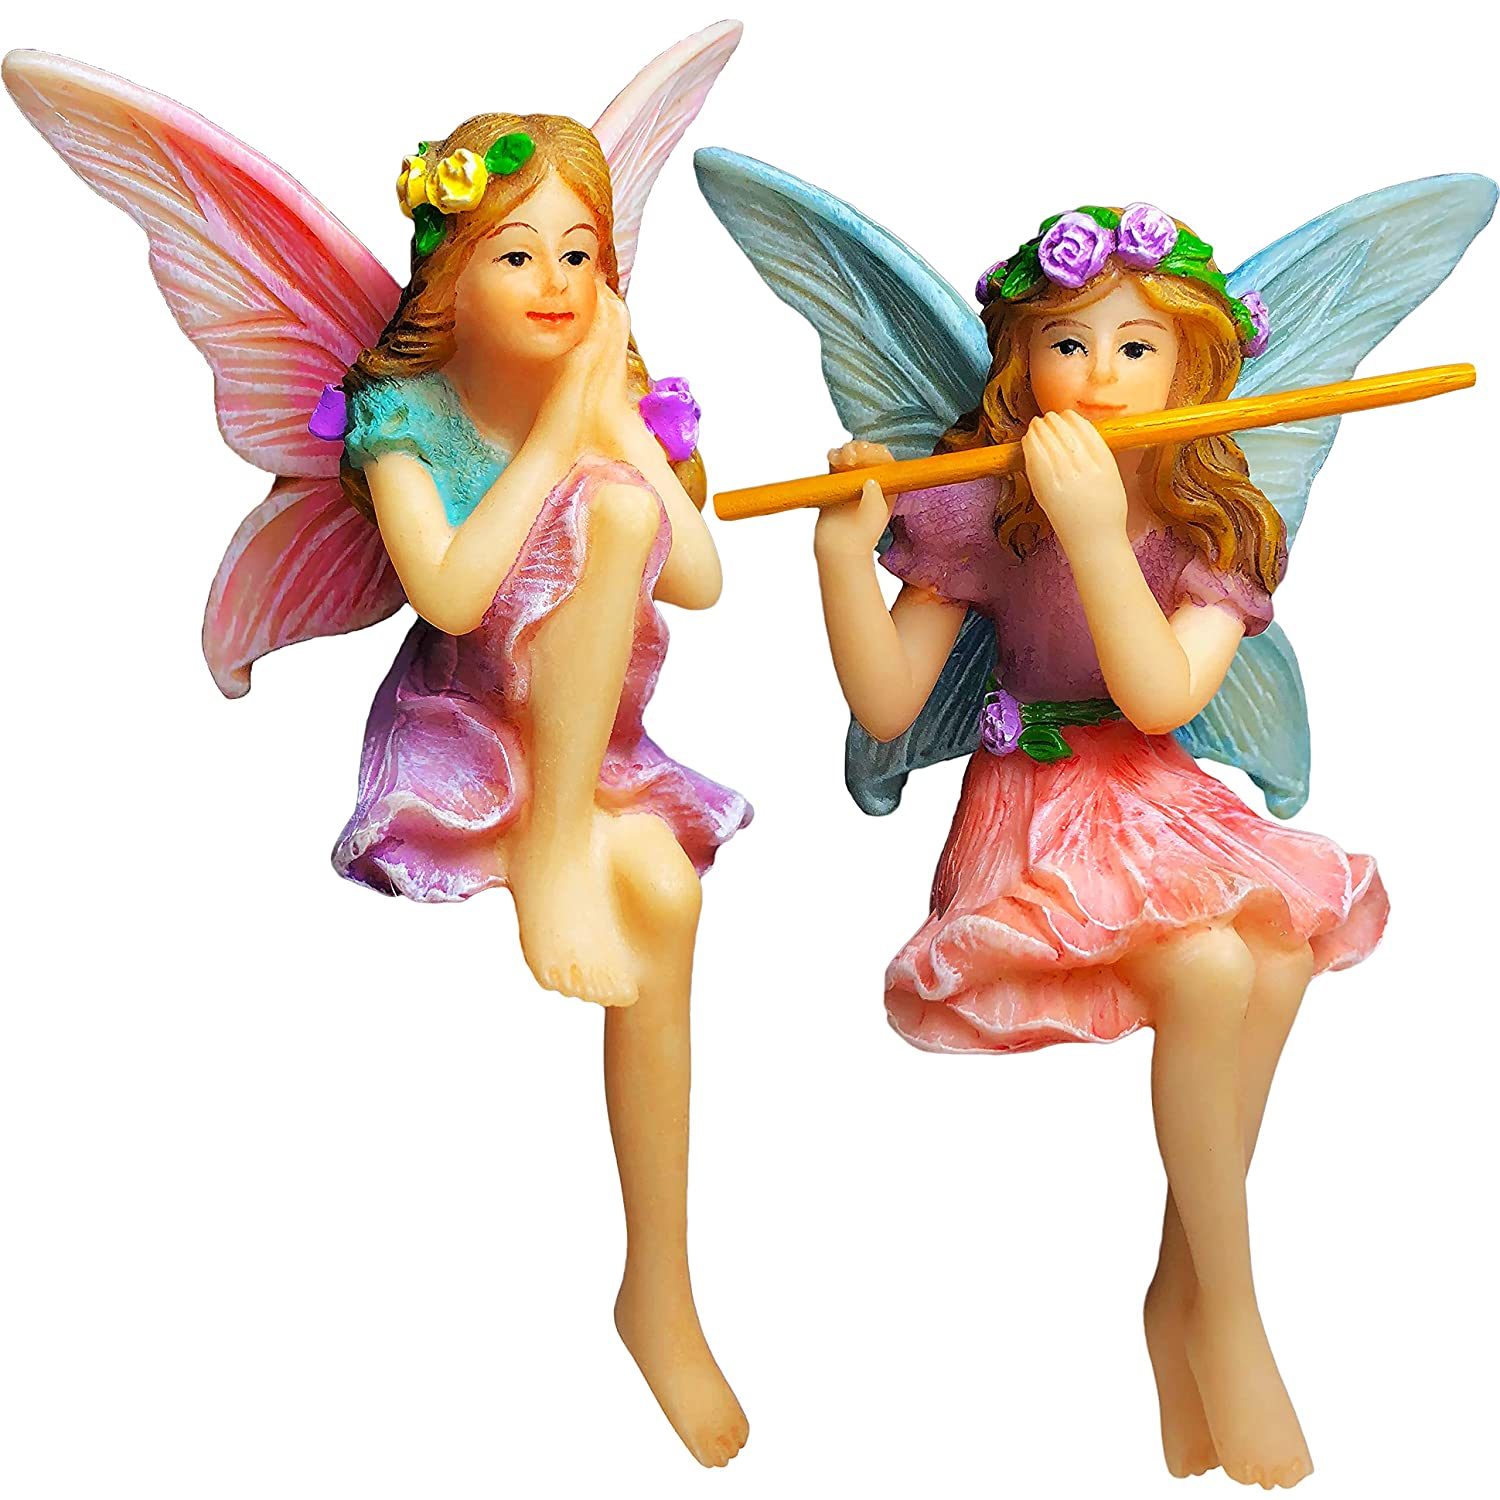 Mood Lab Fairy Garden - Fairy Figurines - Miniature Garden Fairies - Sitting Girls Set of 2 pcs - Kit for Outdoor or House Decor